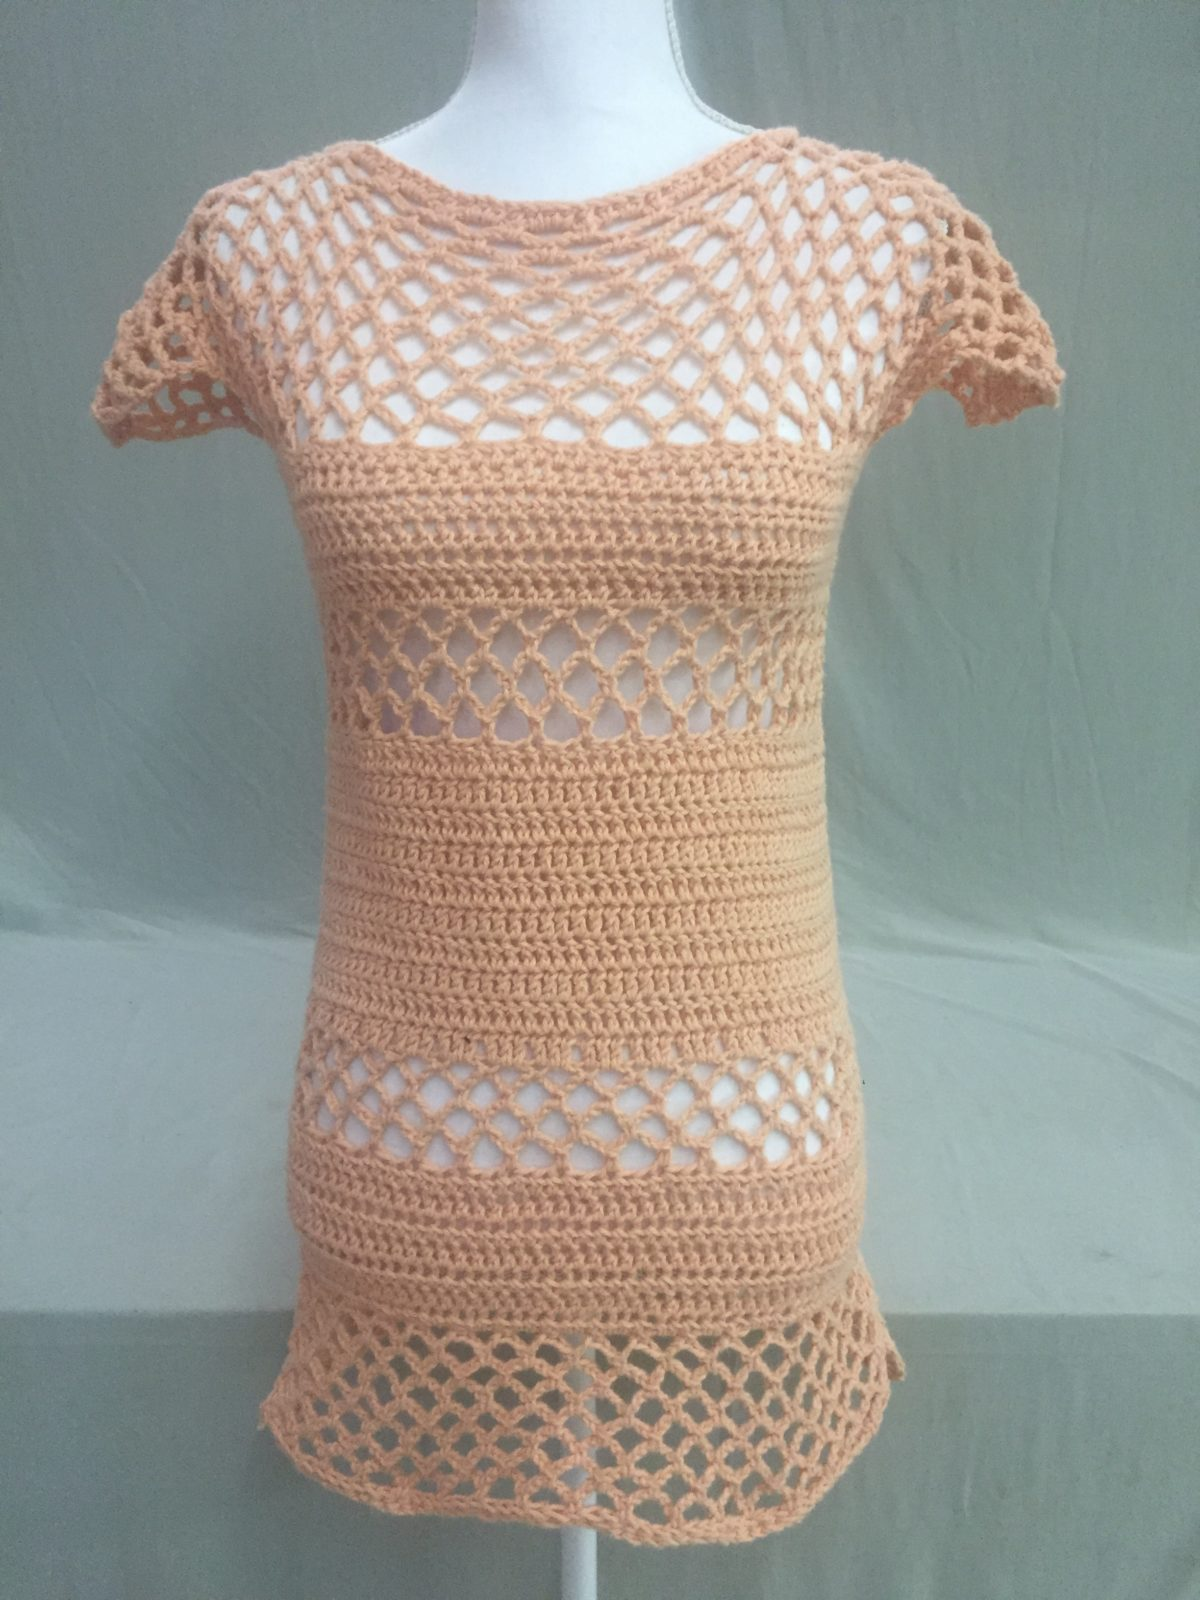 Taking Care of Your Crocheted Cover Ups